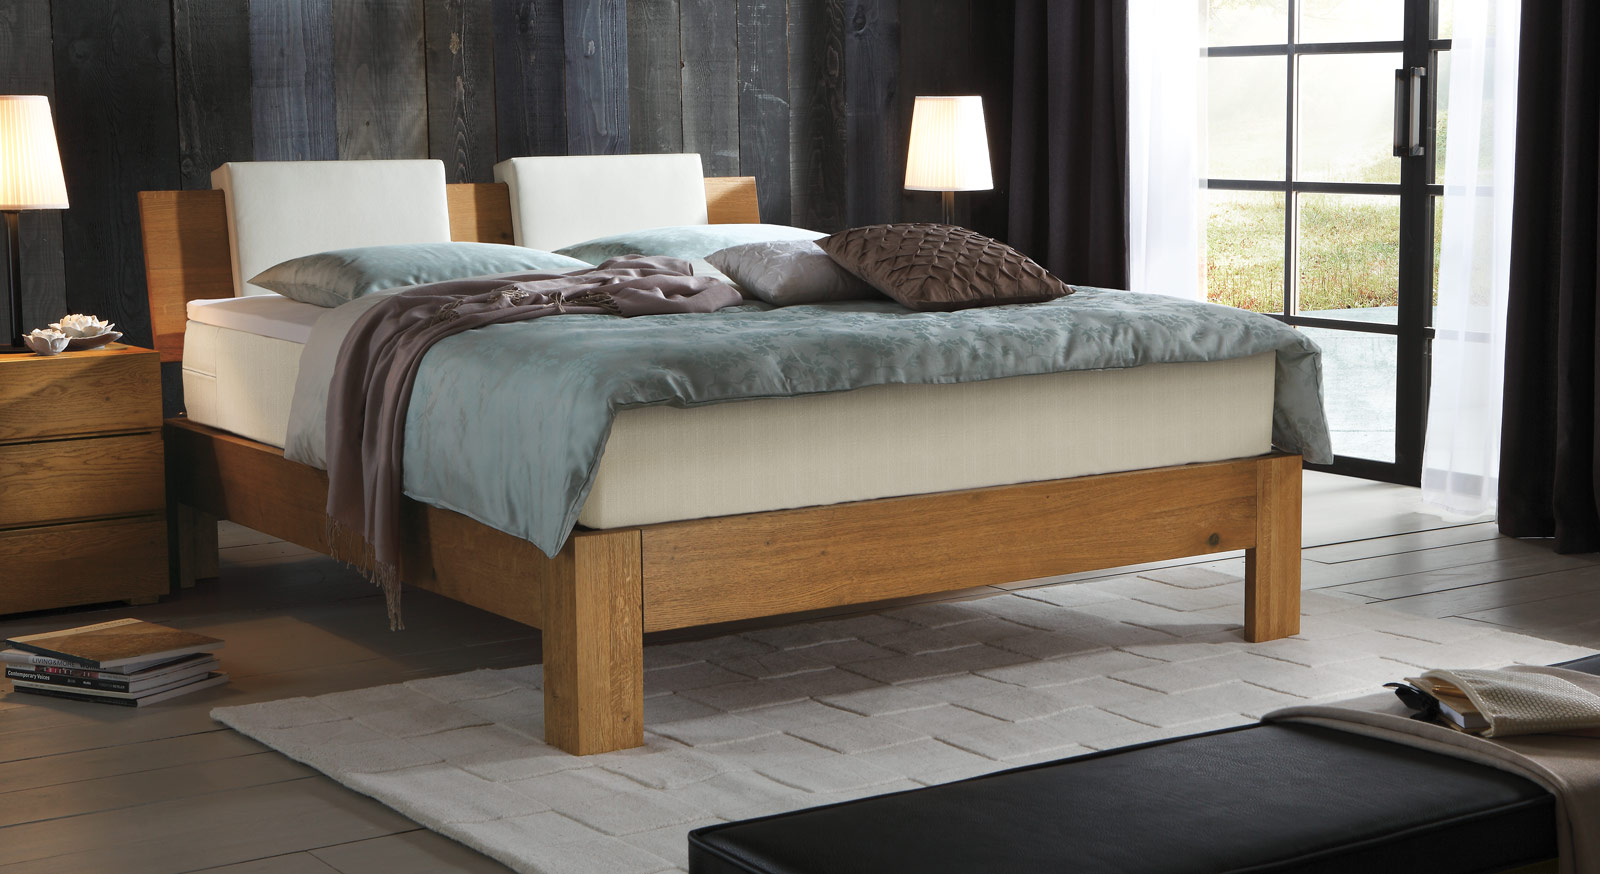 Boxspringbett holz eiche  Boxspringbett Kingston aus Massivholz in Eiche | BETTEN.de